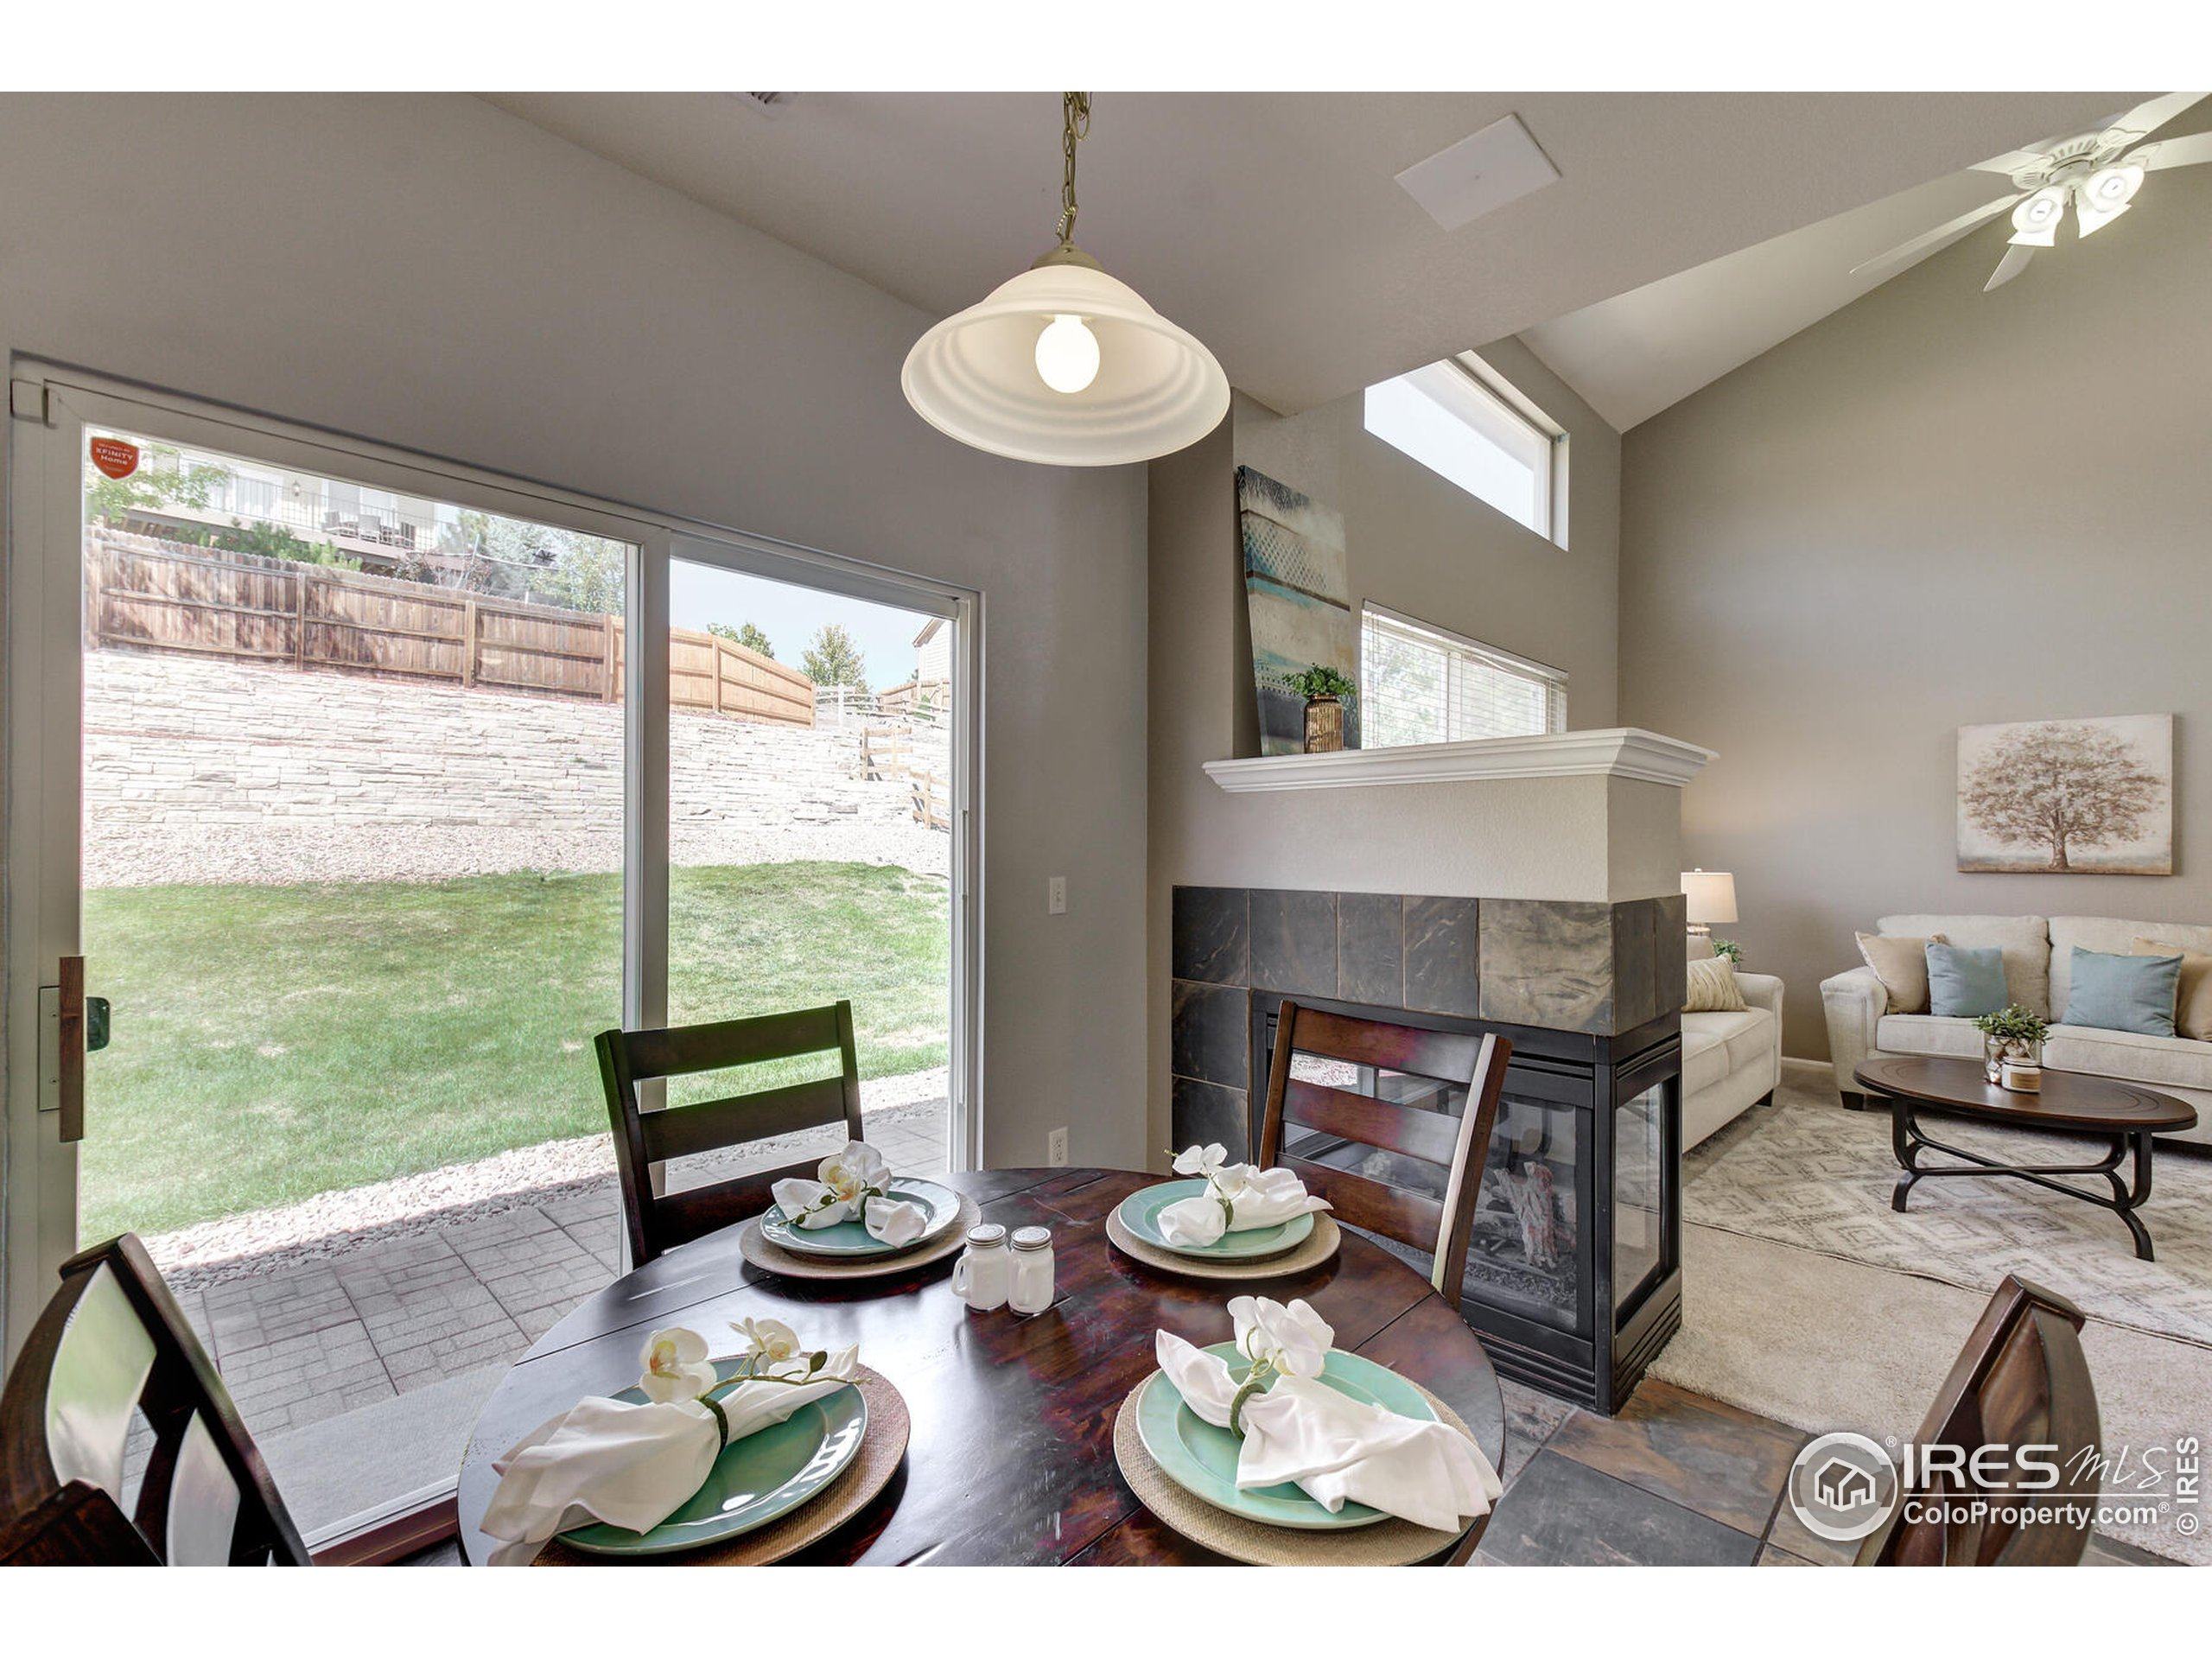 Fireplace is 3-sided in living and dining room